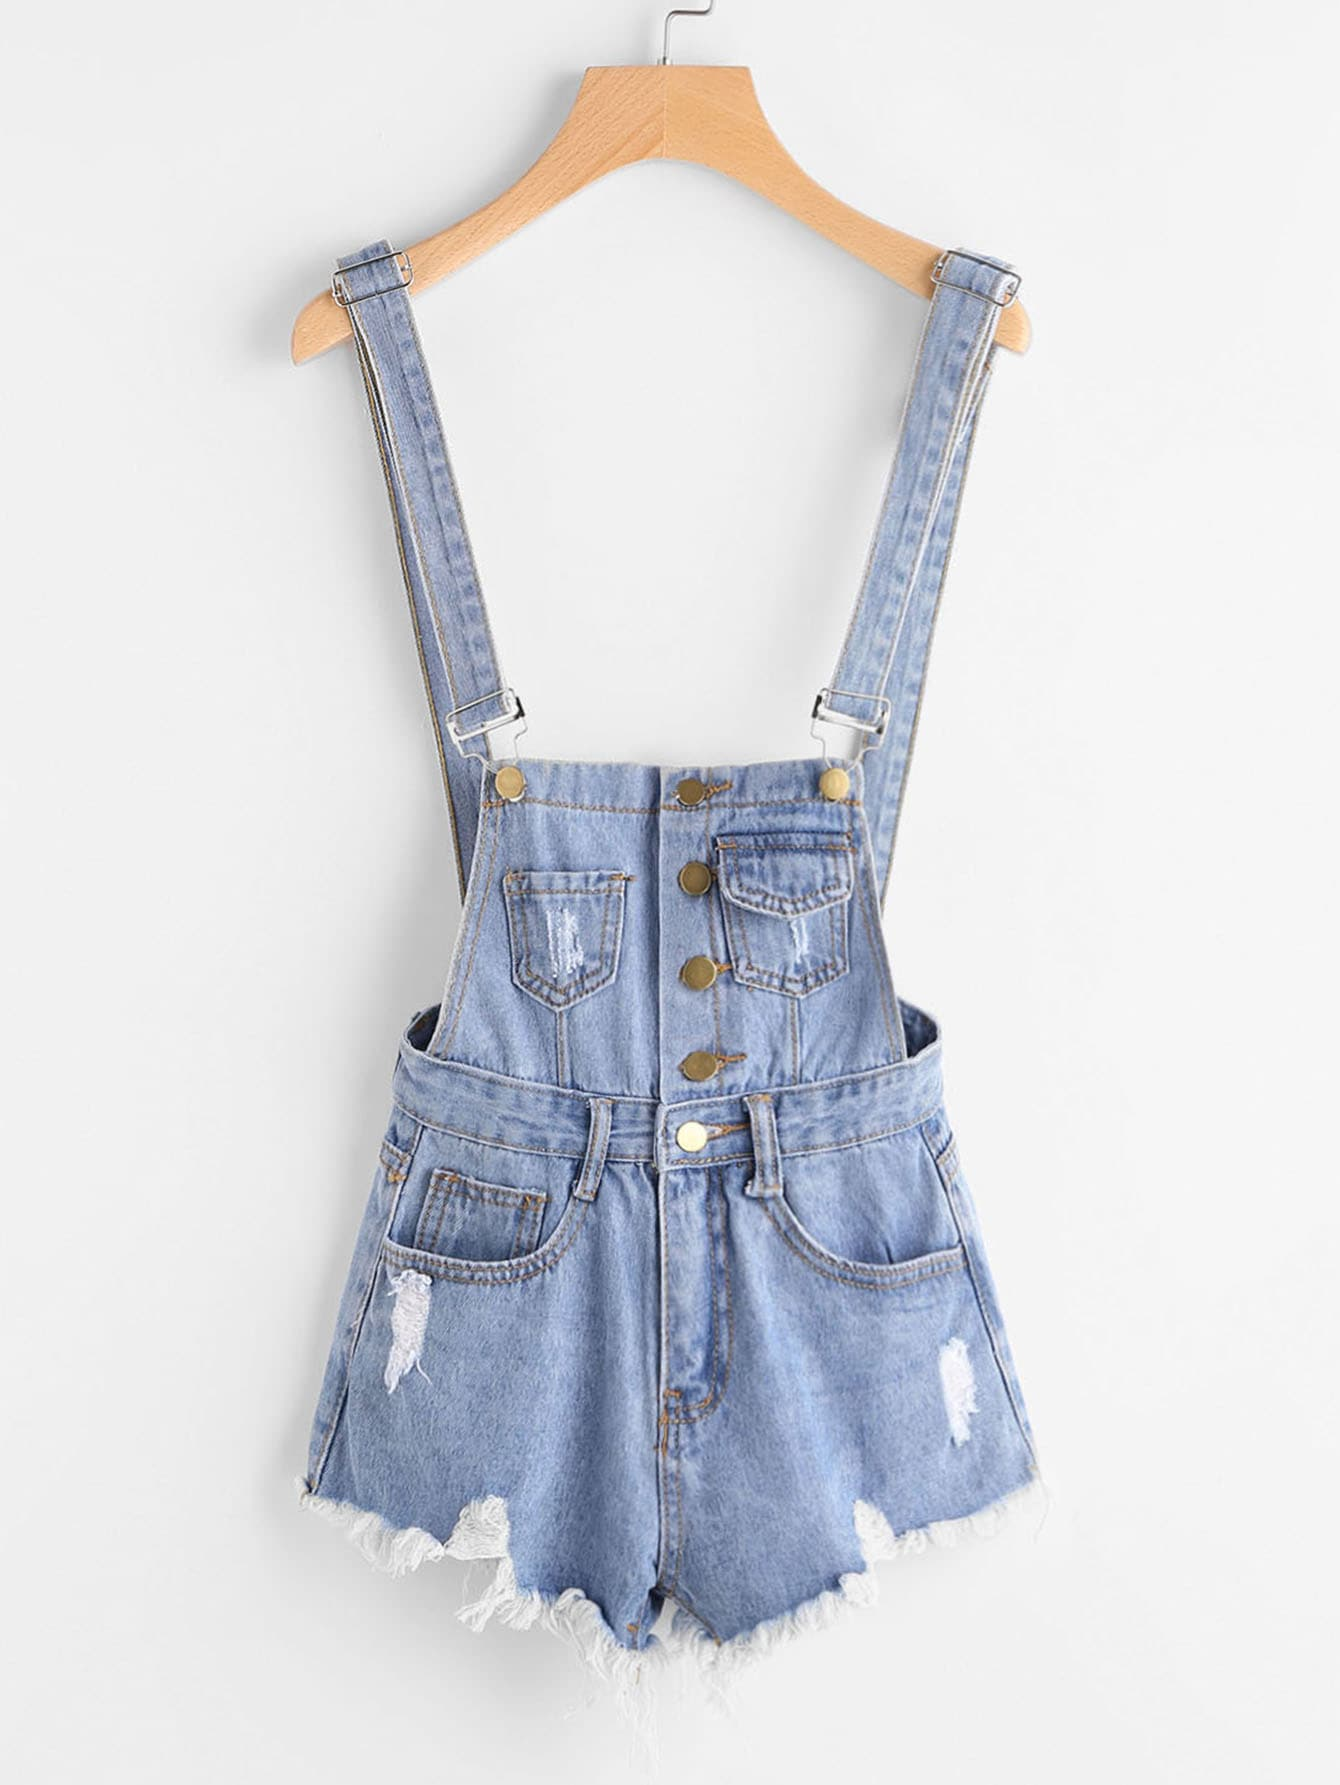 Button Front Ripped Denim Overalls si4178dy si4178 4178 sop8